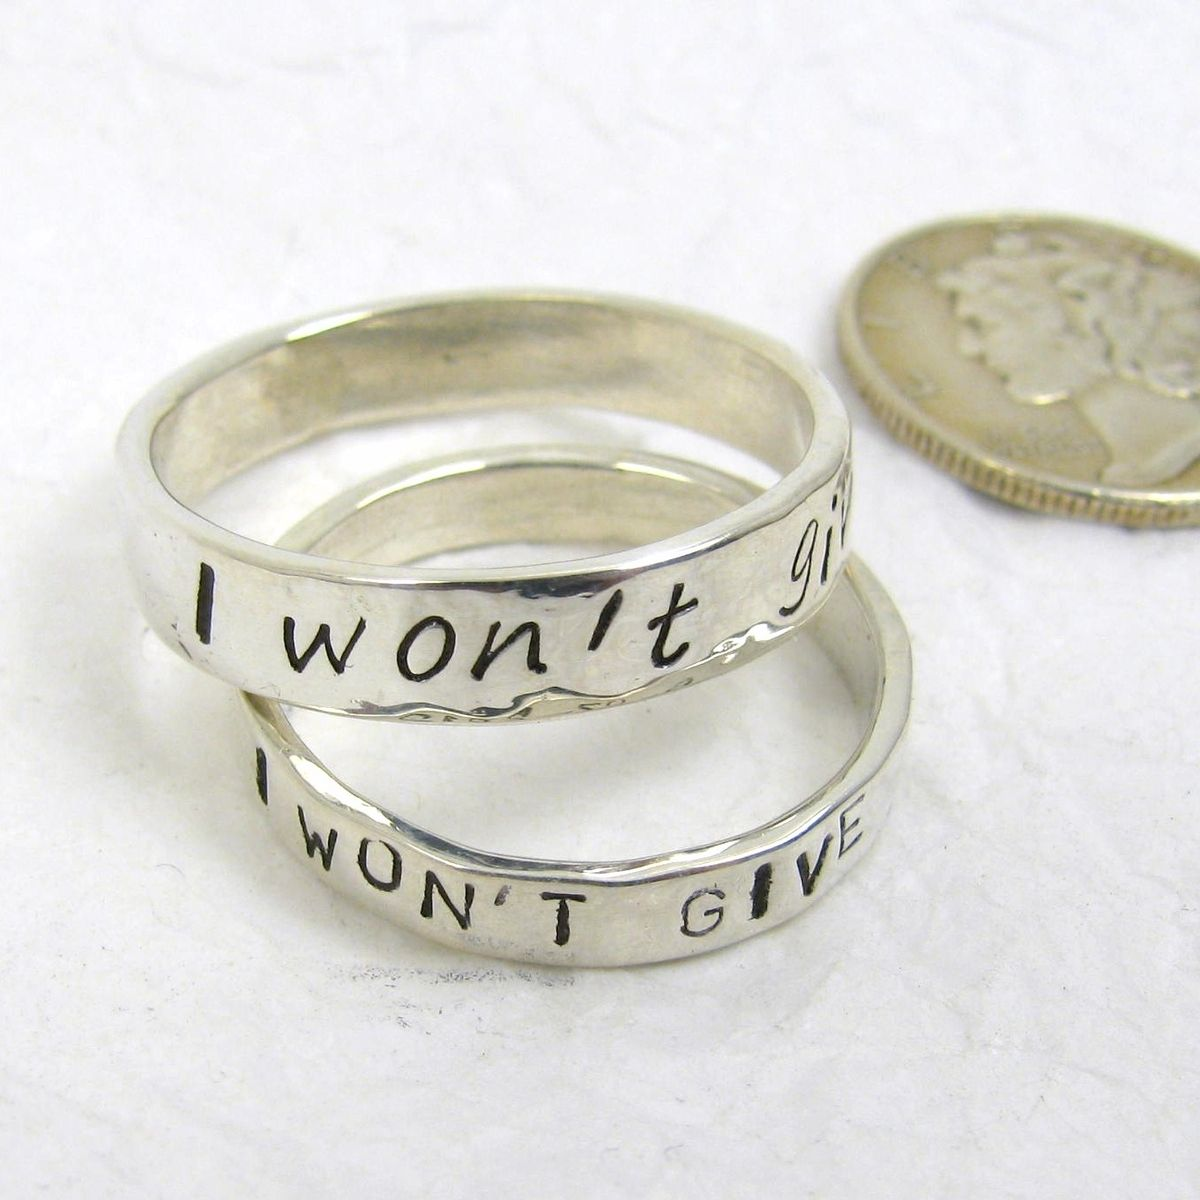 ring anniversary hand fingers married rings stock hands love relationship vows getting photo vow finger day anniversaries wedding m